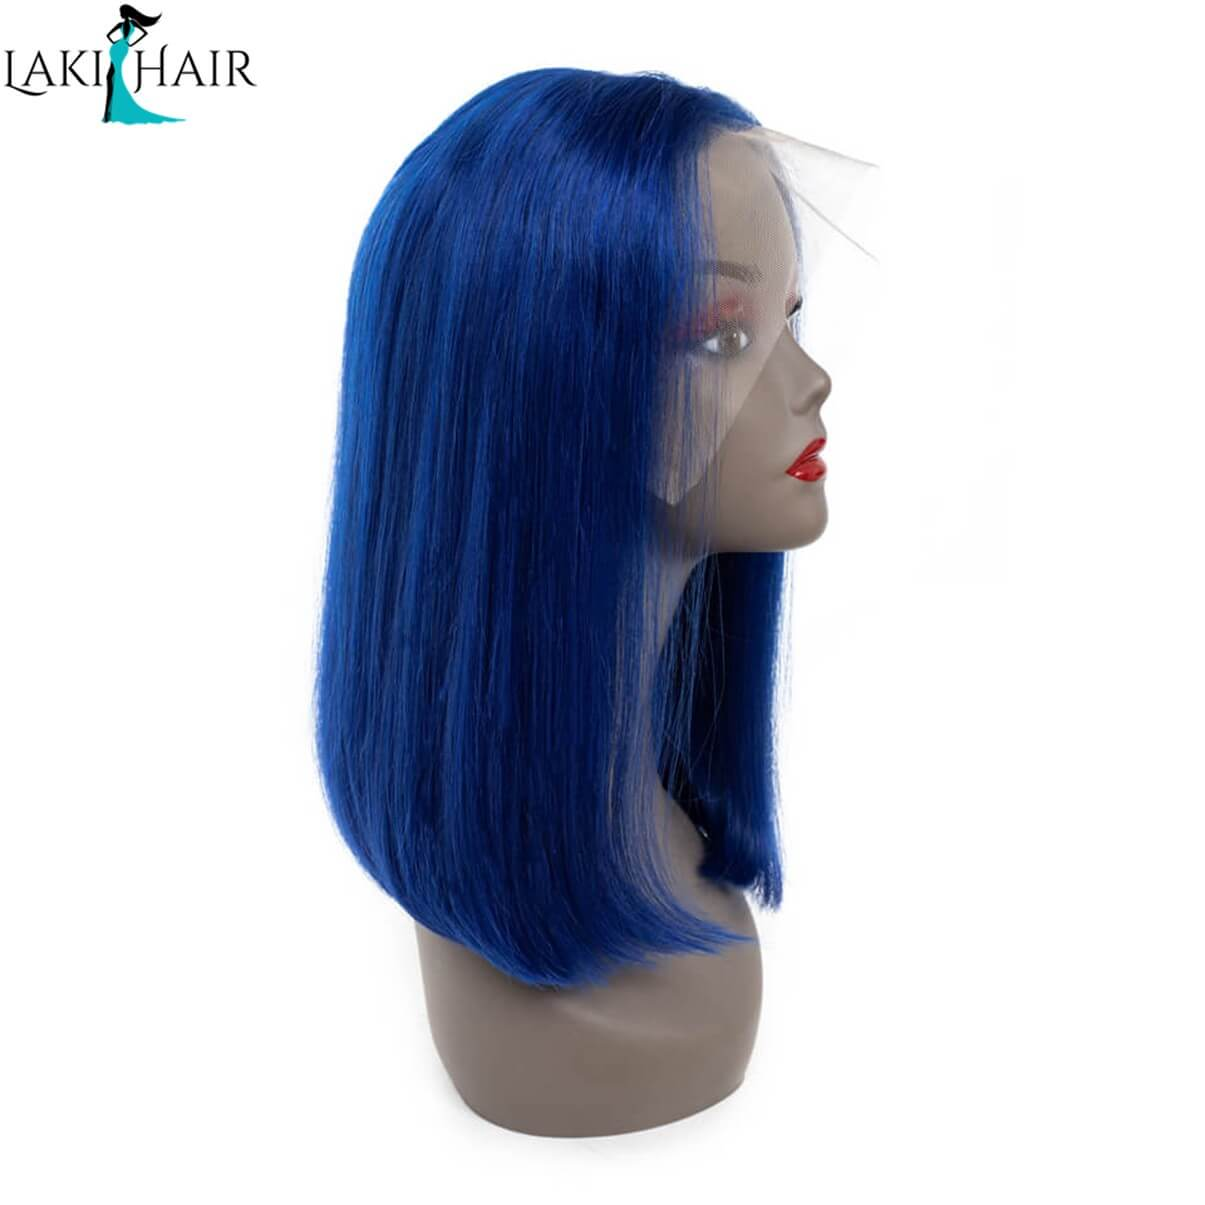 Lakihair Short Bob Straight Lace Wigs Colored Wigs Blue Short Lace Front Human Hair Wigs 180% Density Pre Plucked Hairline With Baby Hair